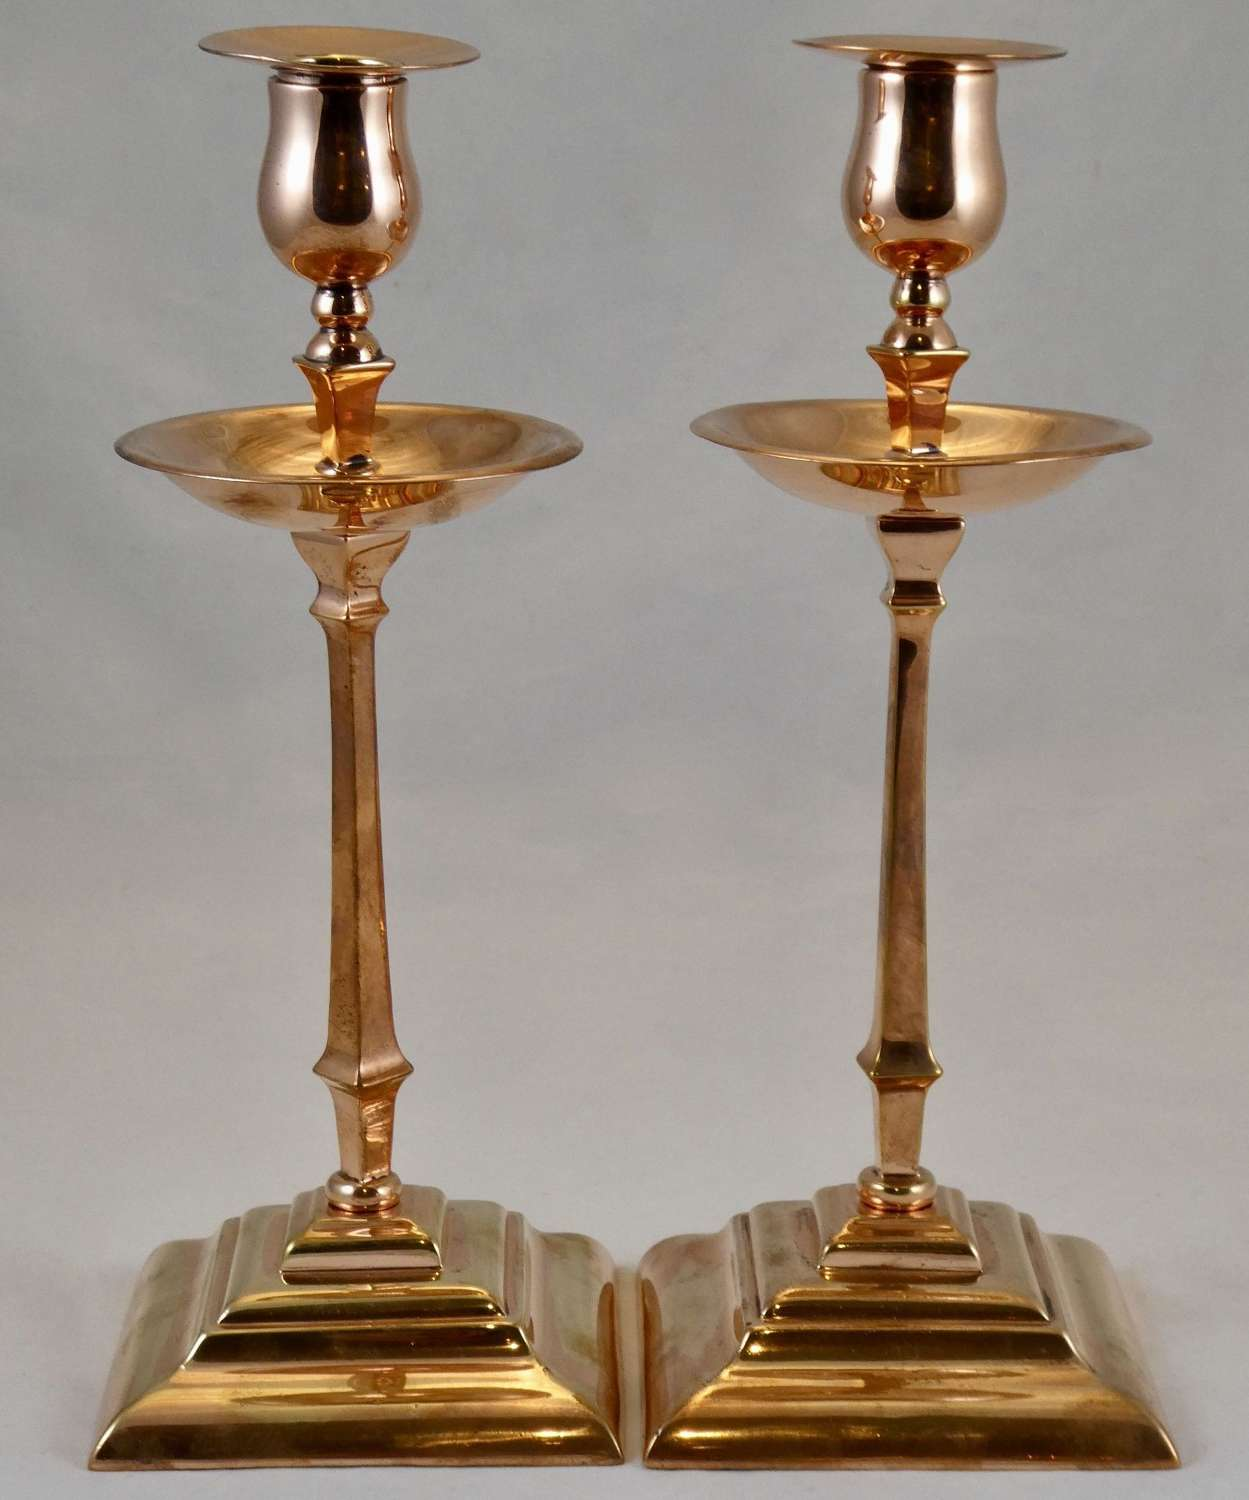 Pair of Copper Candlesticks by Benson